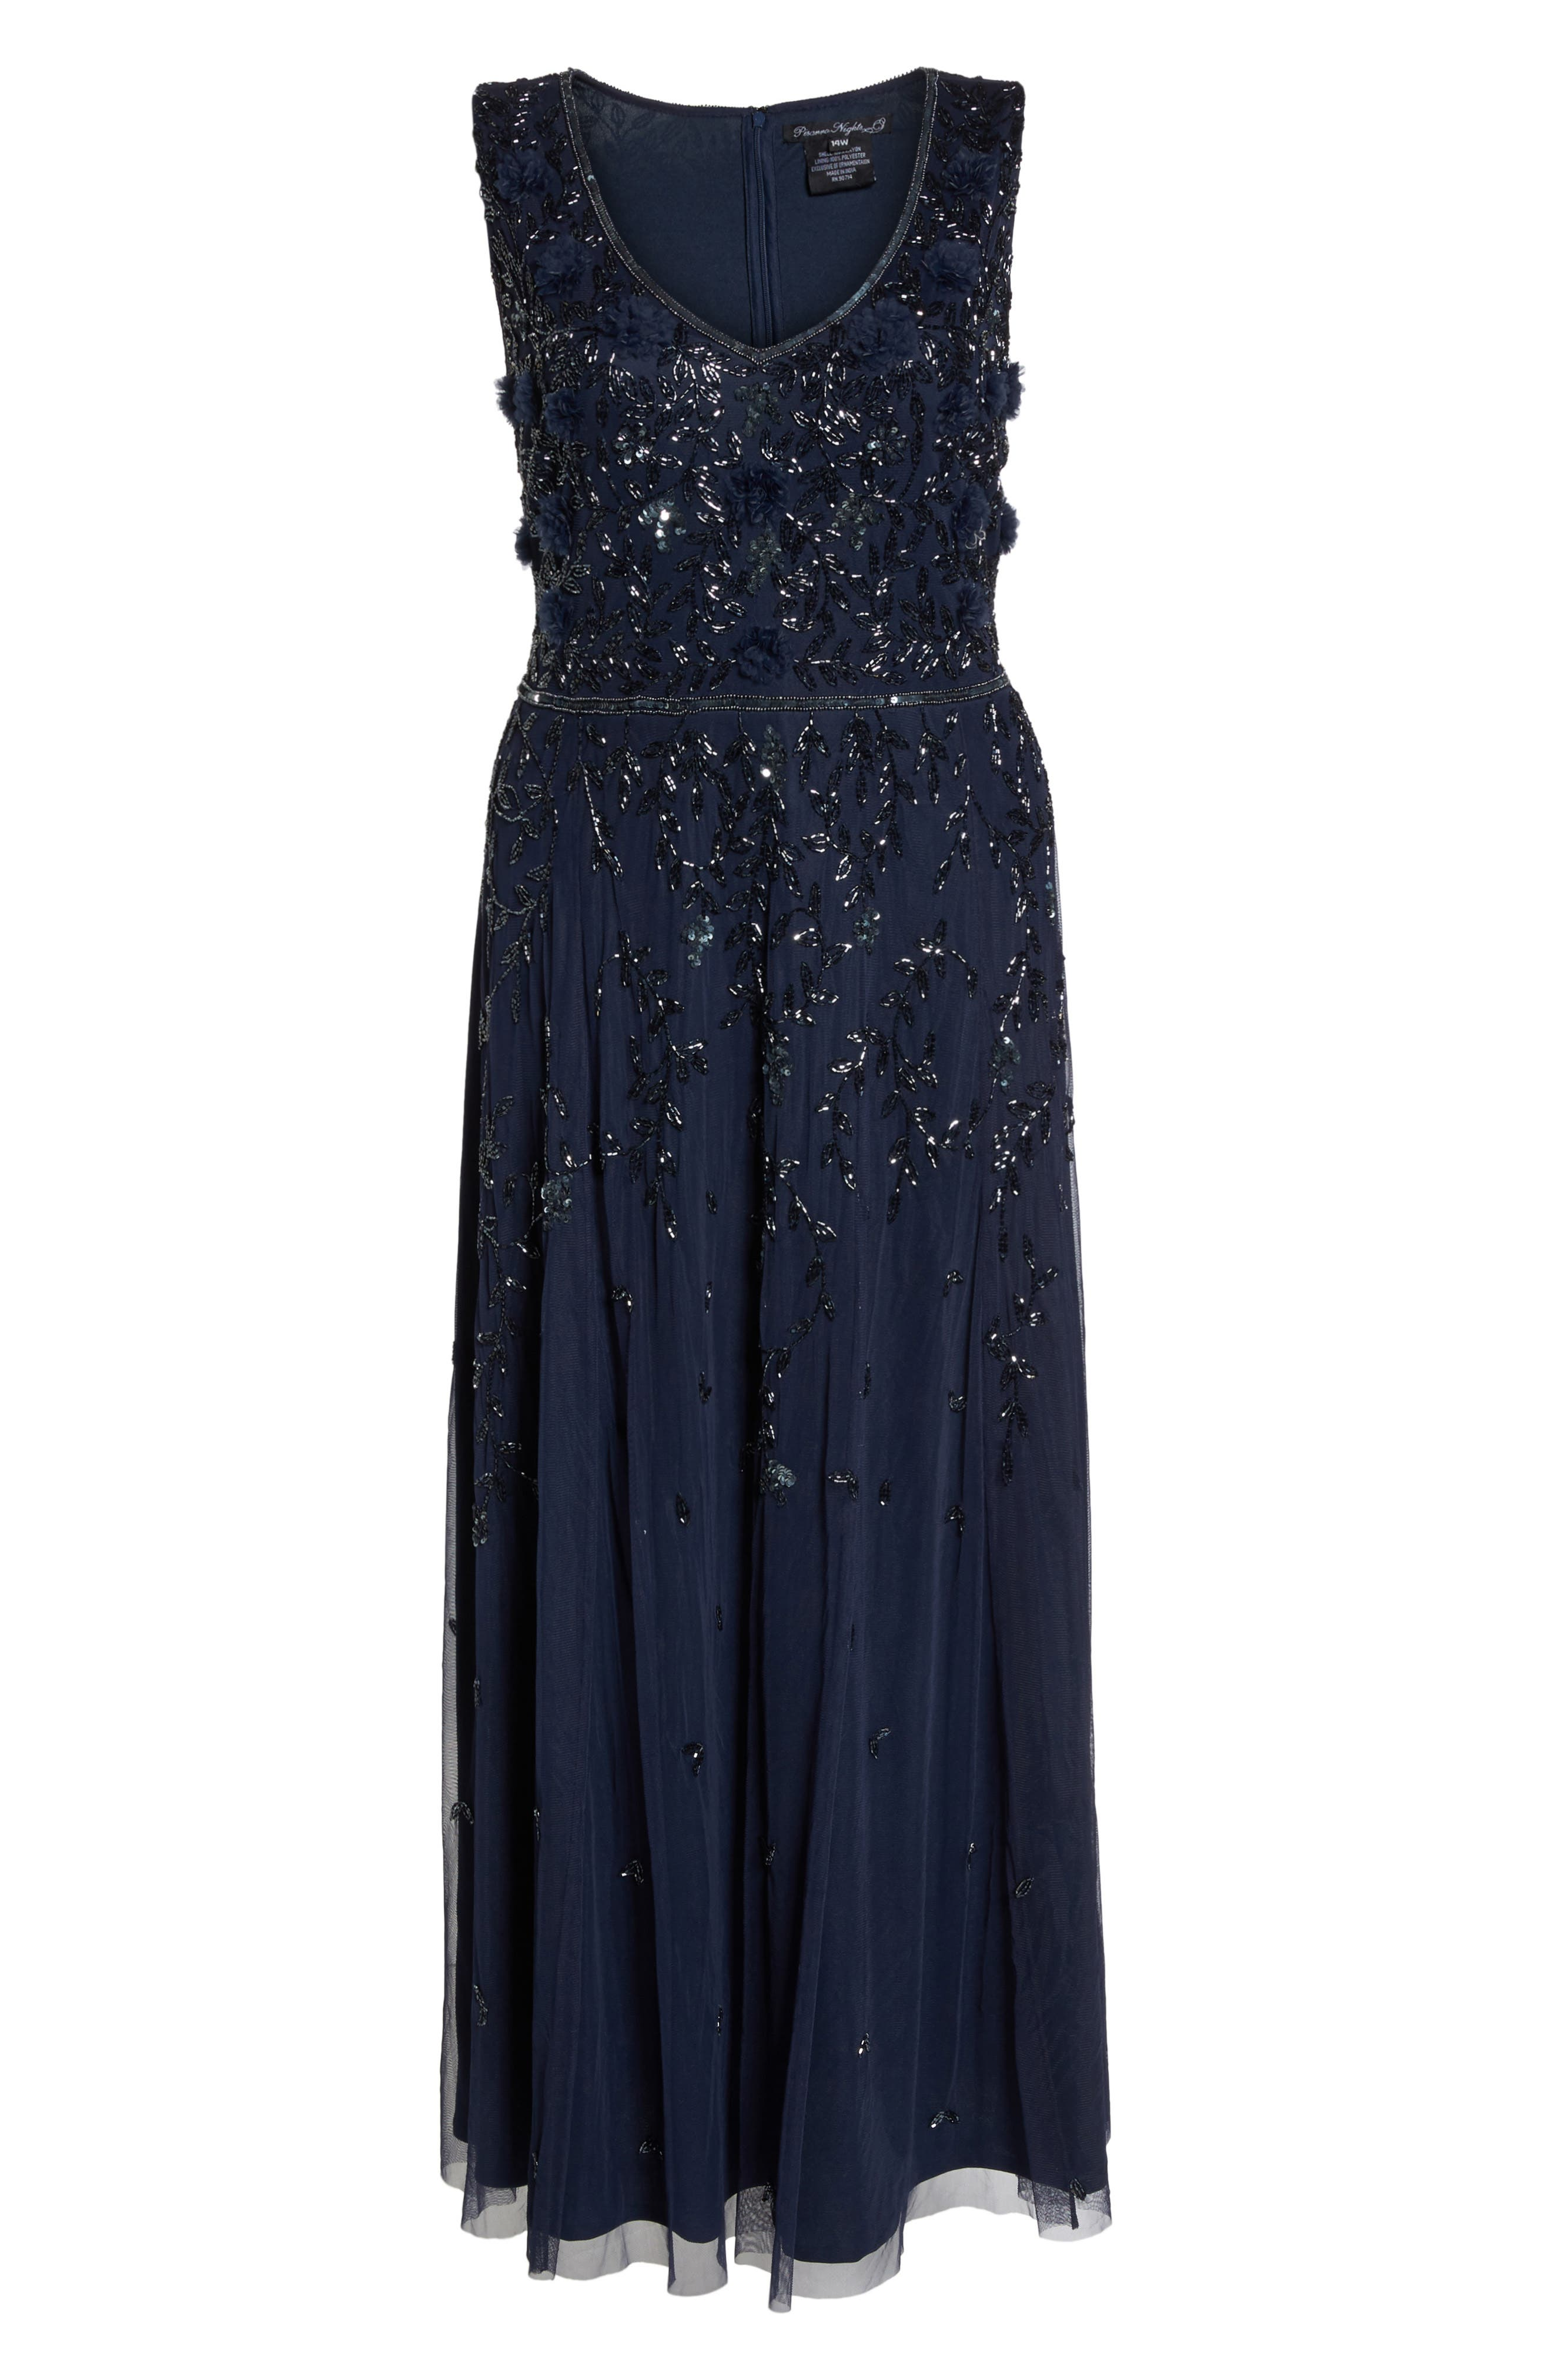 3D Embellished Mesh A-Line Gown,                             Alternate thumbnail 6, color,                             Navy